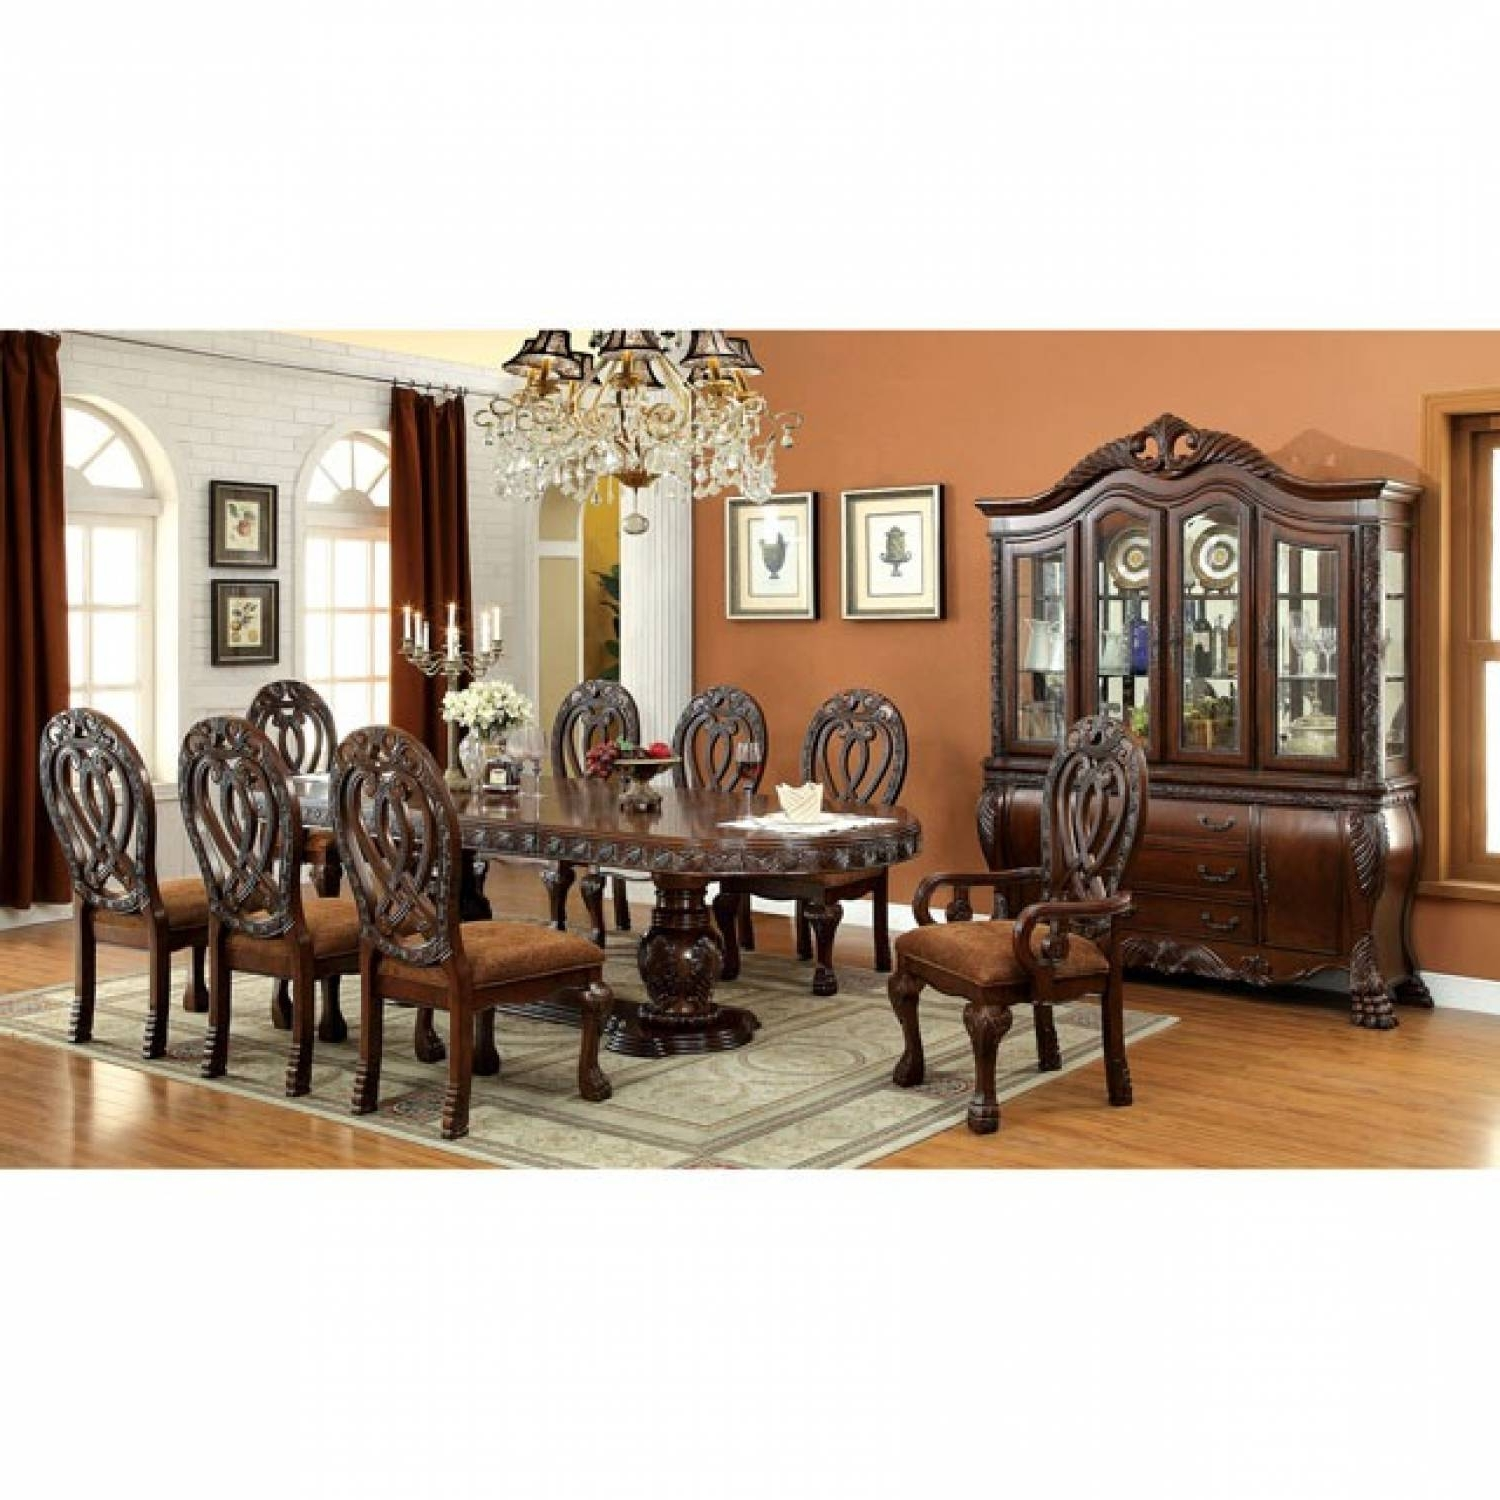 8 Chairs Dining Sets Pertaining To Current Wyndmere 7 Pc Set Dining Table And 8 Chairs Cherry (Gallery 25 of 25)